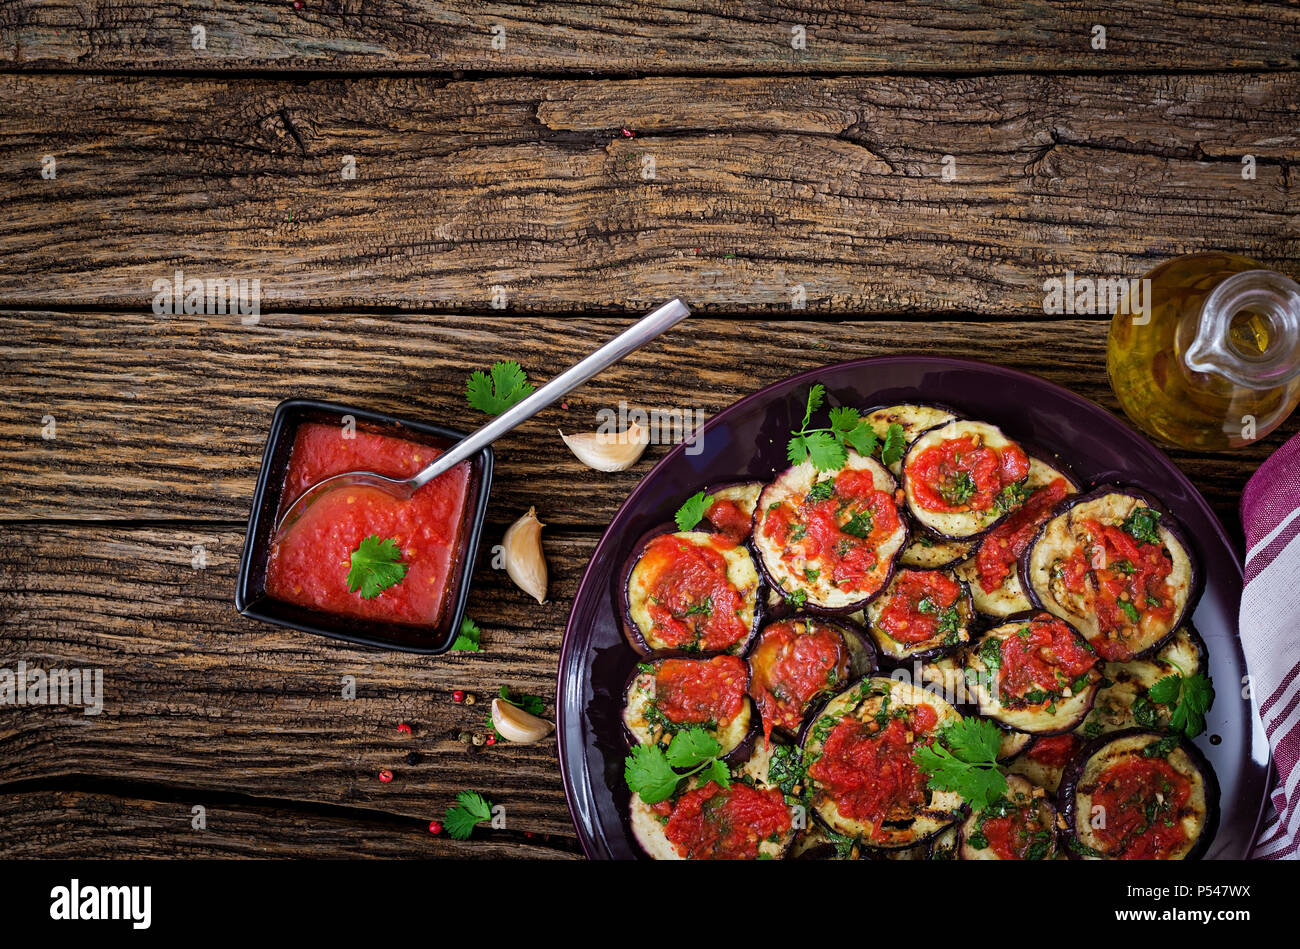 Eggplant grilled with tomato sauce, garlic, cilantro and mint. Vegan food. Grilled aubergine. Top view. Flat lay - Stock Image